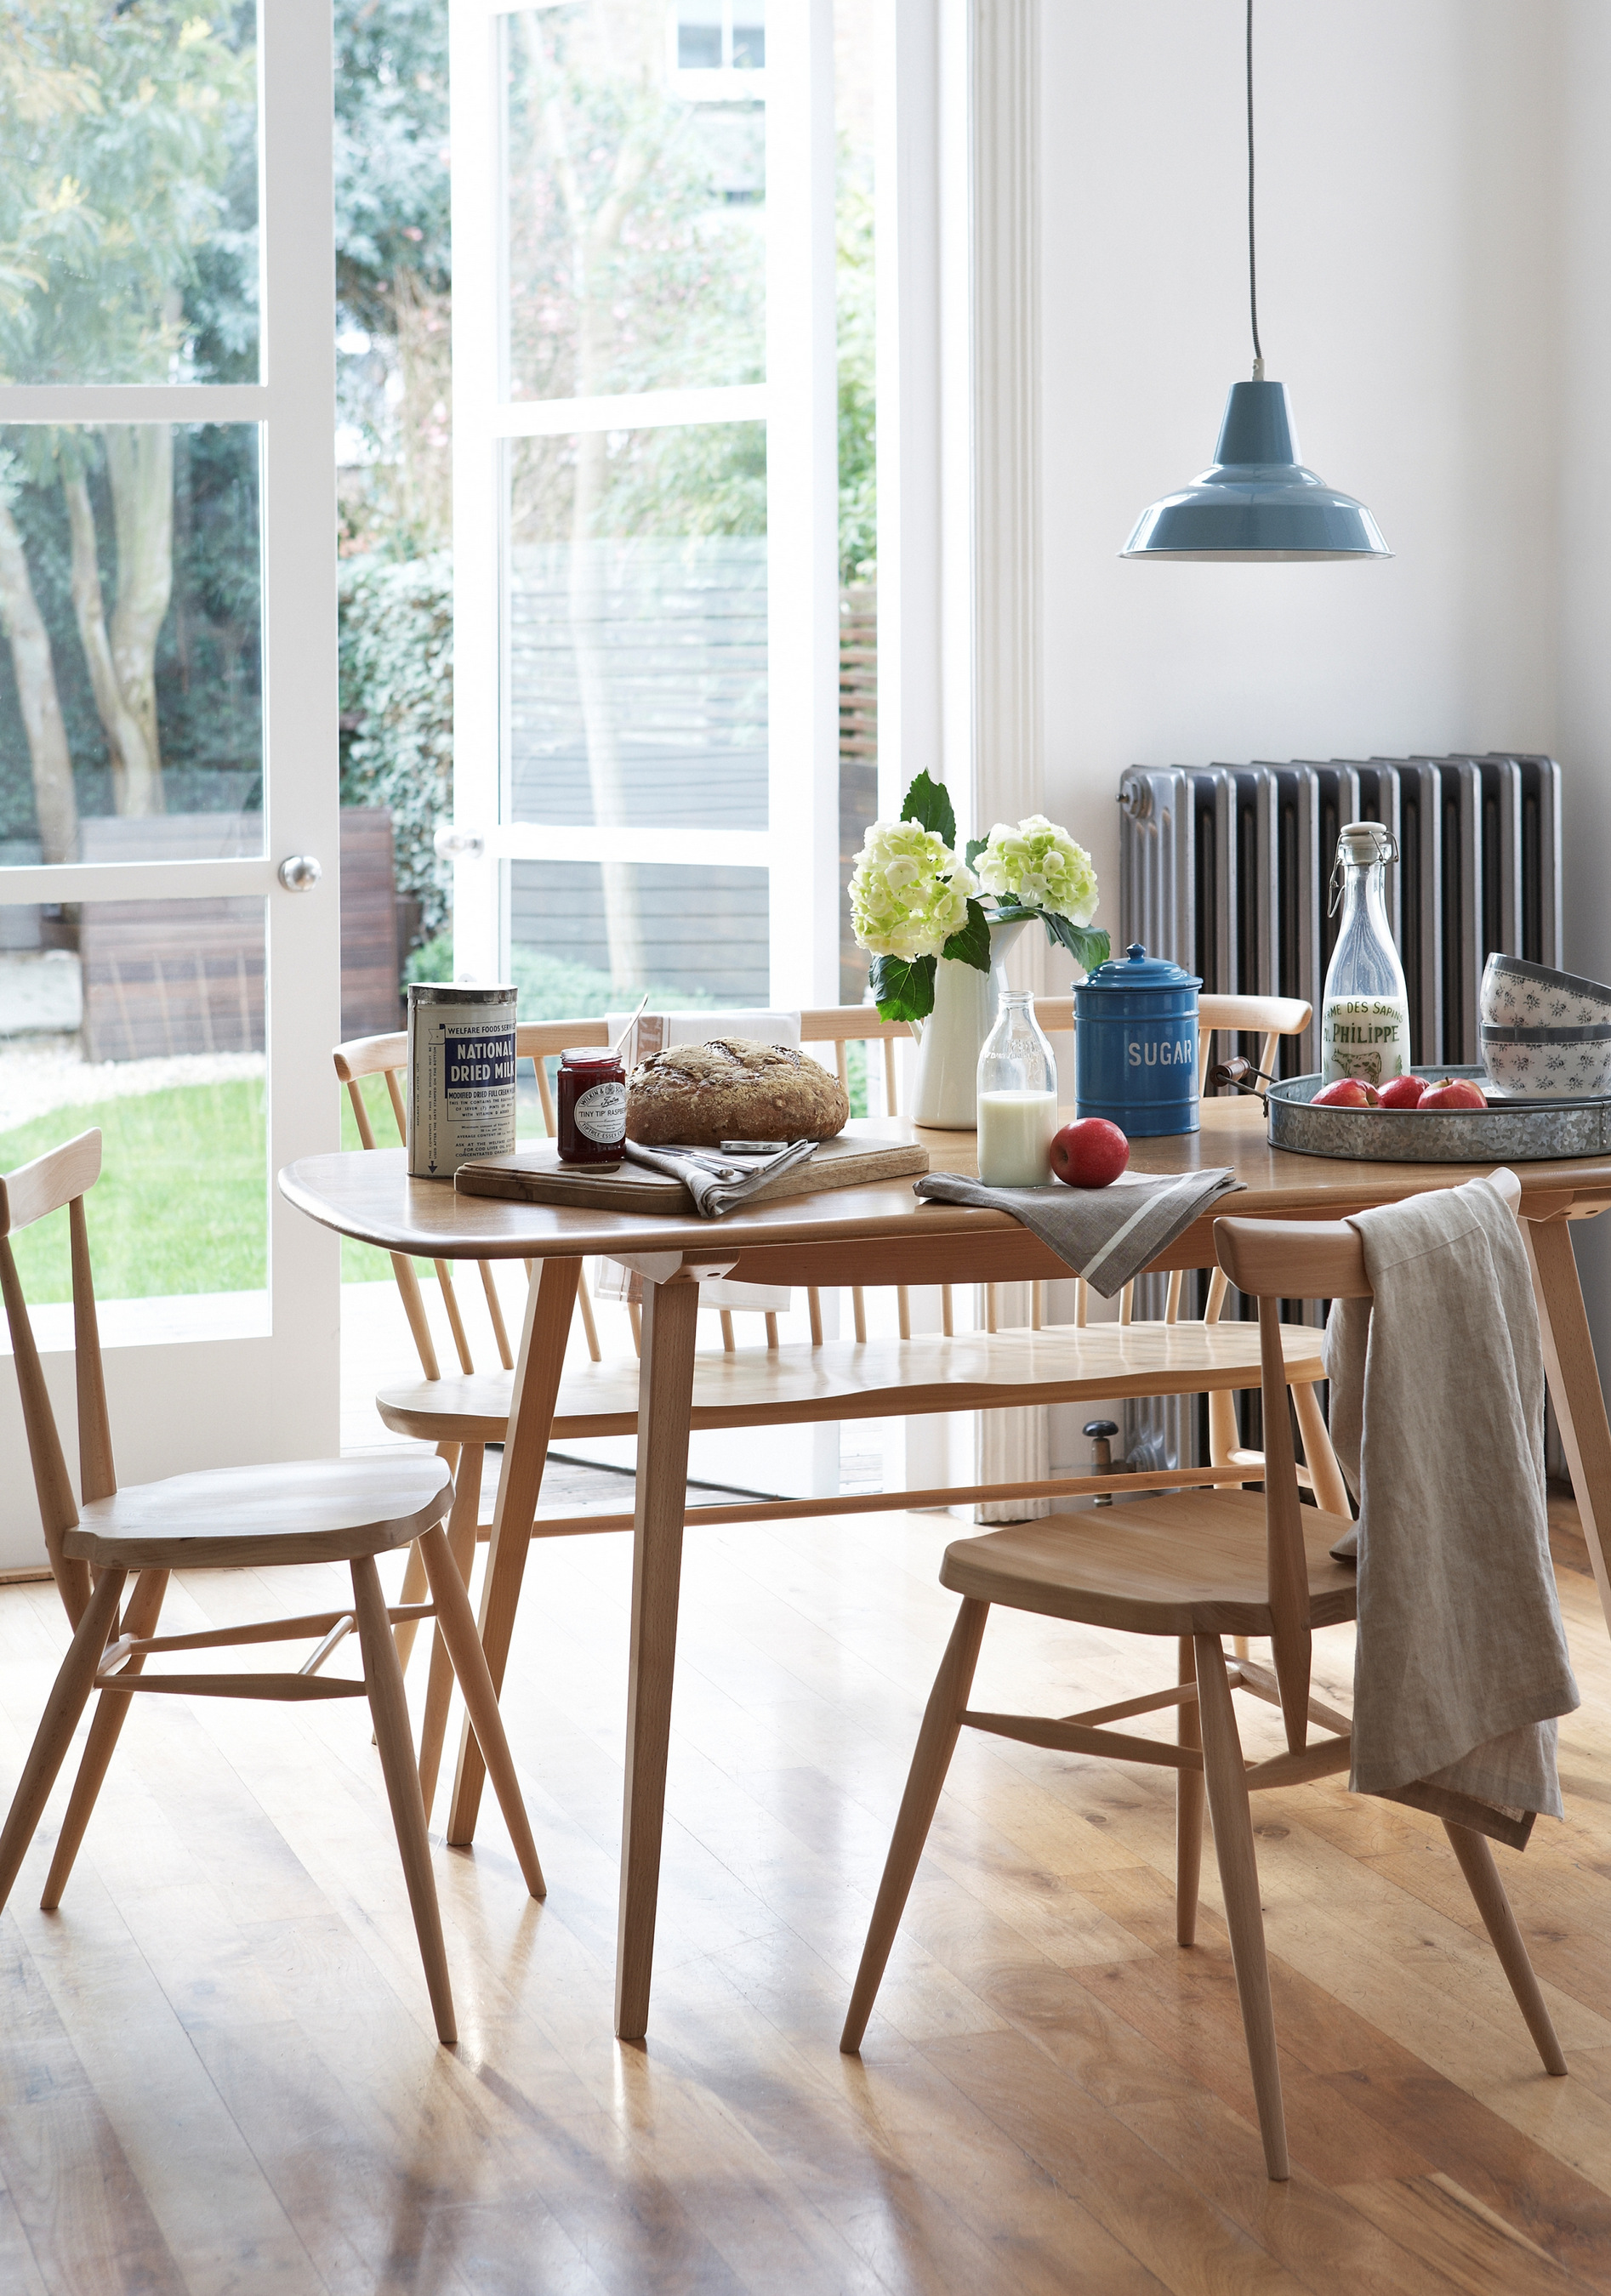 A passion for creating beautiful interiors for an orangery  : Ercol Pinto Lifestyle 3 from www.anglianhome.co.uk size 1894 x 2700 jpeg 1327kB